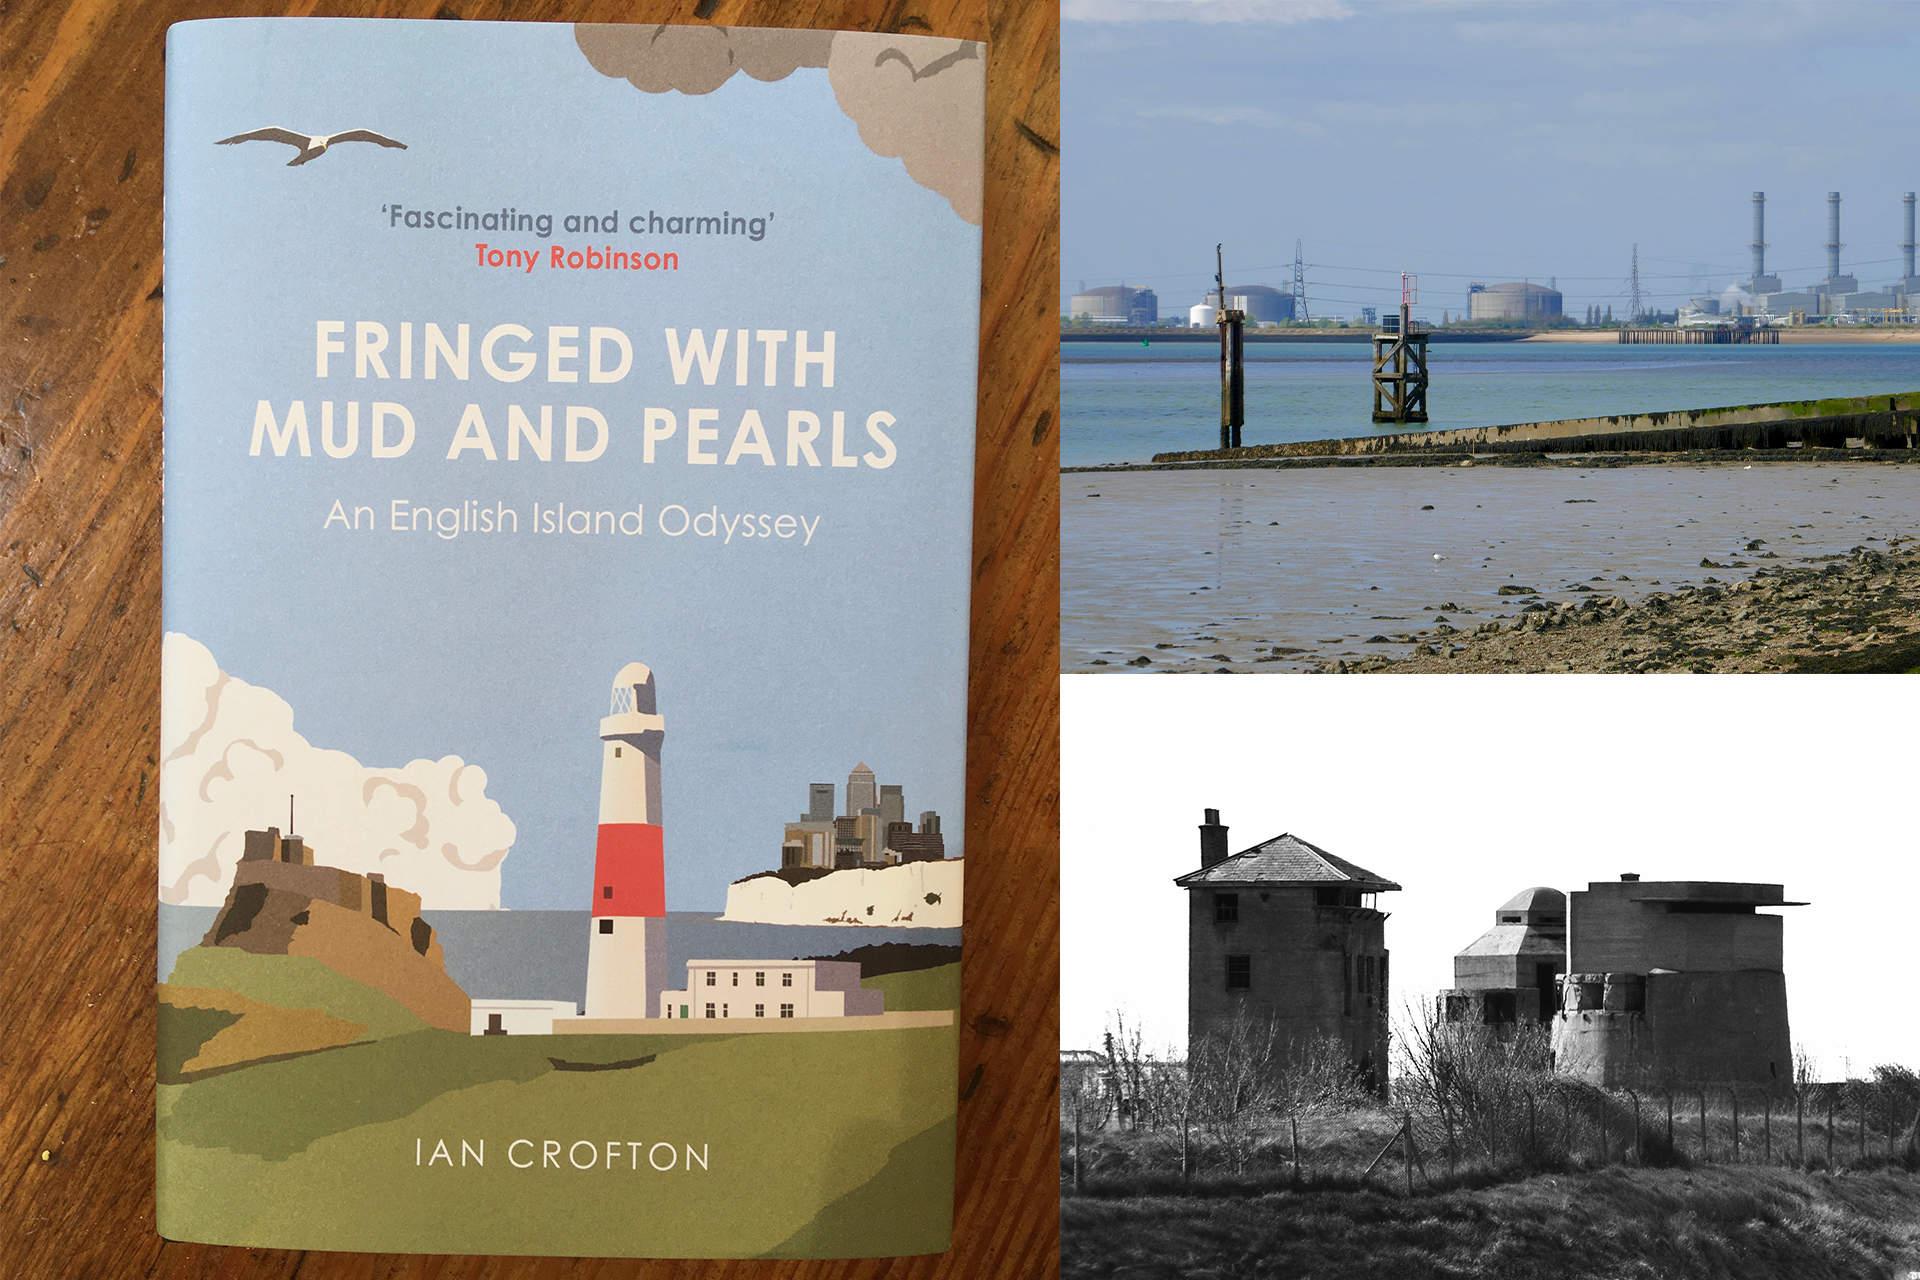 Fringed with Mud and Pearls: An English Island Odyssey